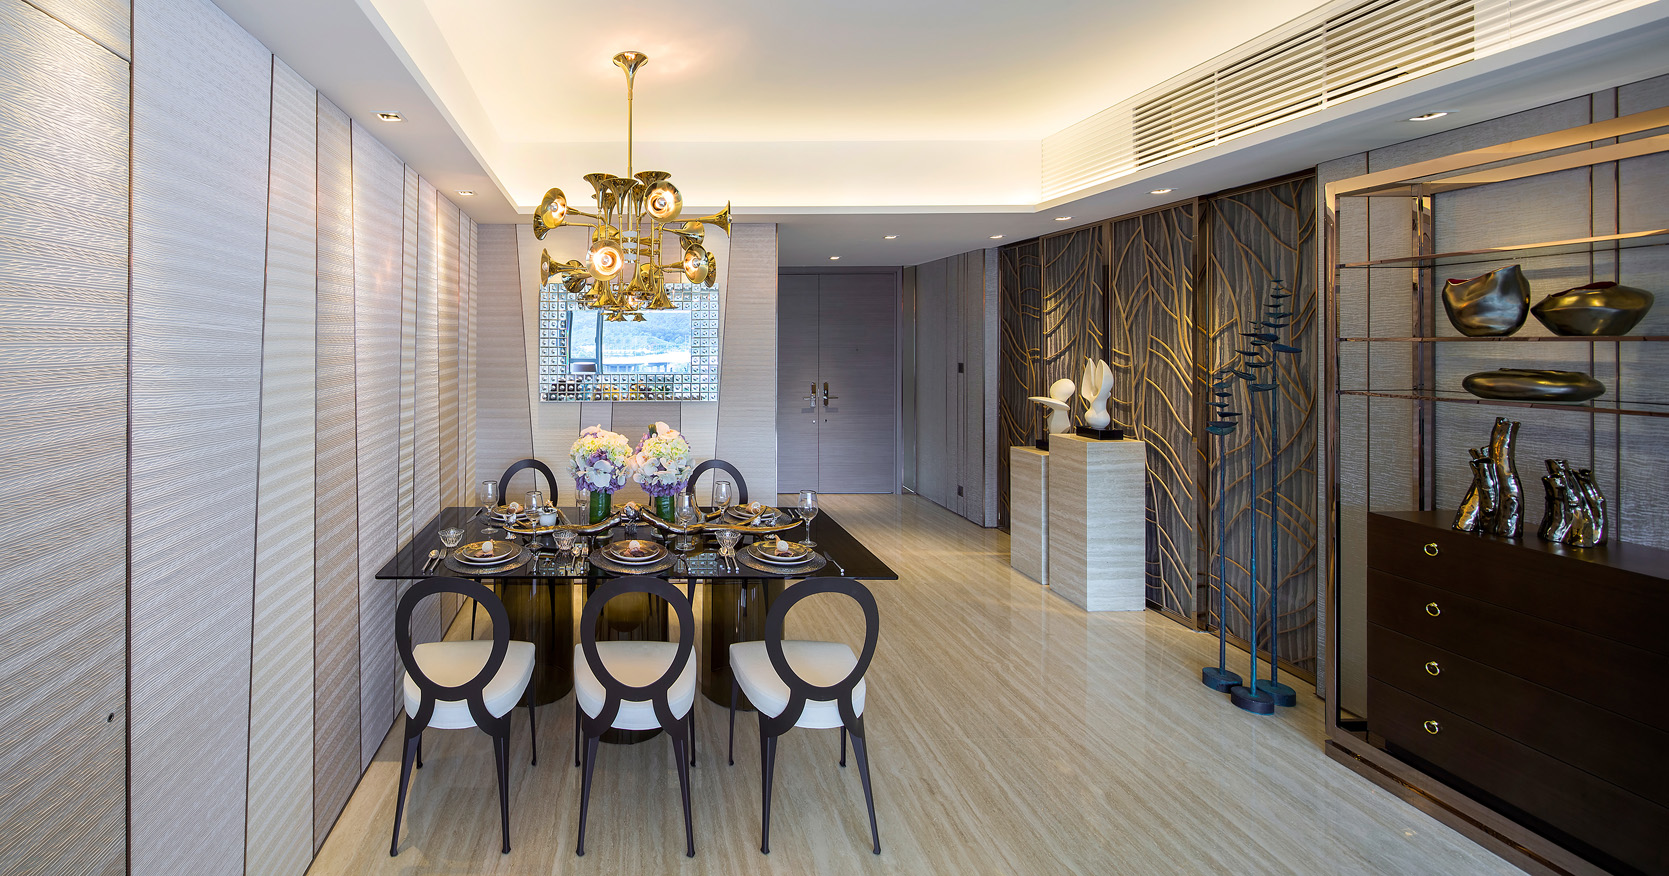 Dining room lighting ideas for a luxury interior luxury airbnbs The Most Amazing Luxury Airbnbs You Can Rent Dining room lighting ideas Delightfull Botti luxury airbnbs The Most Amazing Luxury Airbnbs You Can Rent Dining room lighting ideas Delightfull Botti